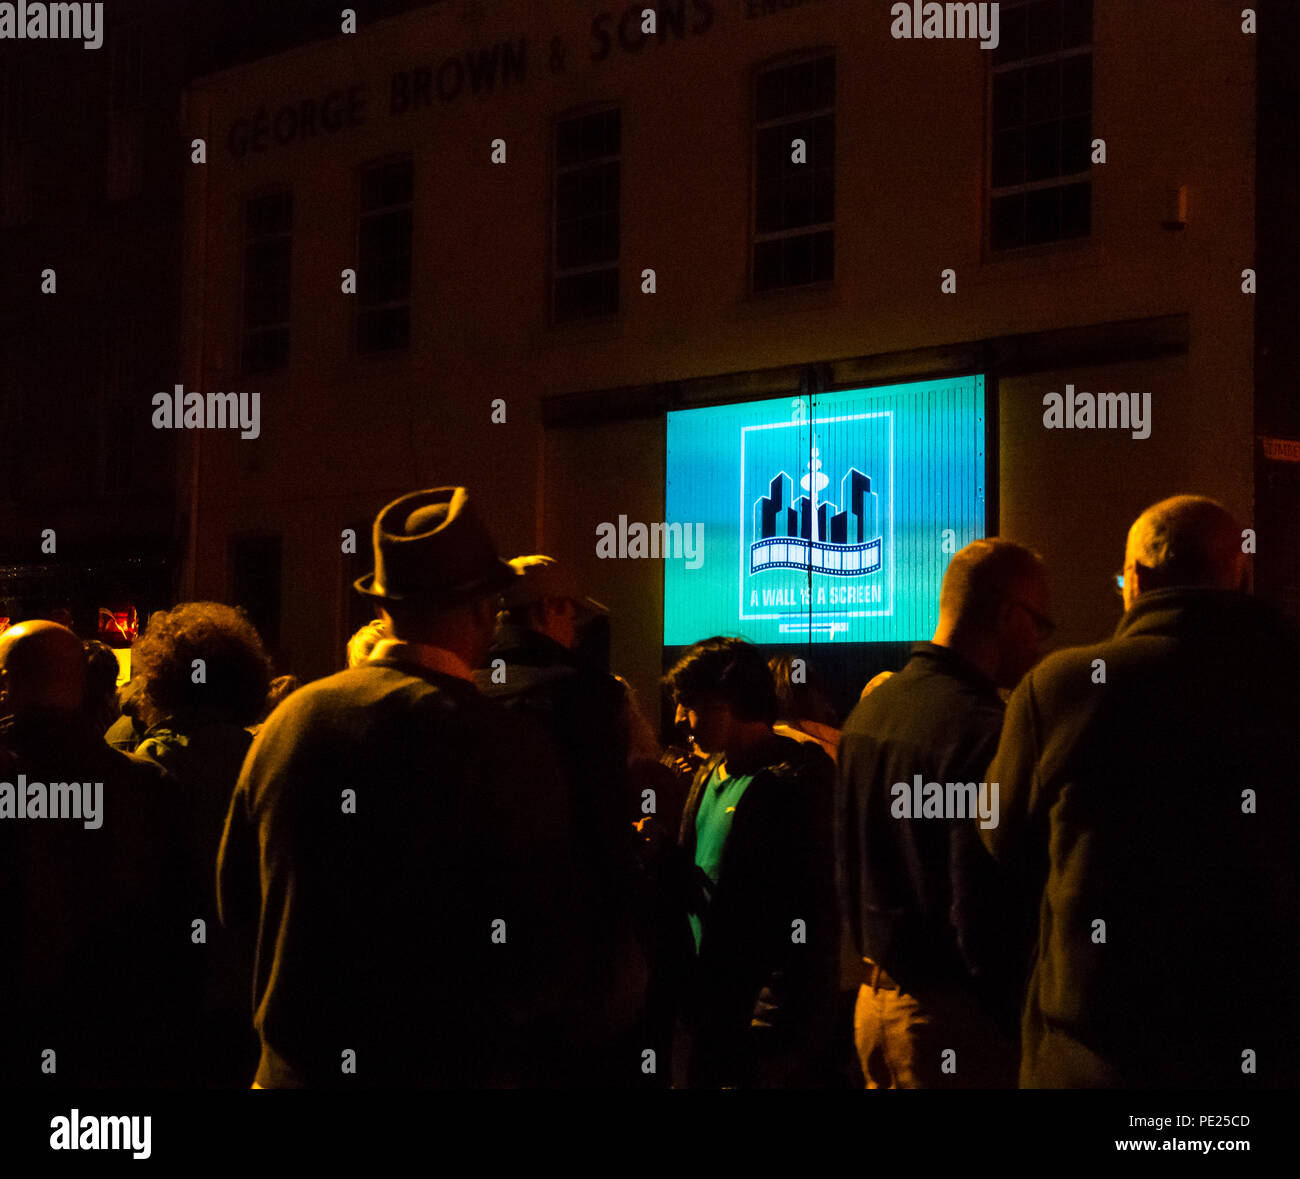 Leith, Scotland, UK. 11th August 2018. Edinburgh Fringe Festival outdoor event A Wall is a Screen: Free guided short film walk with site-specific outdoor screenings on walls of buildings in a tour of five locations in the back streets of Leith, produced by a Hamburg-based short film collective. 600 people attended the event - Stock Image